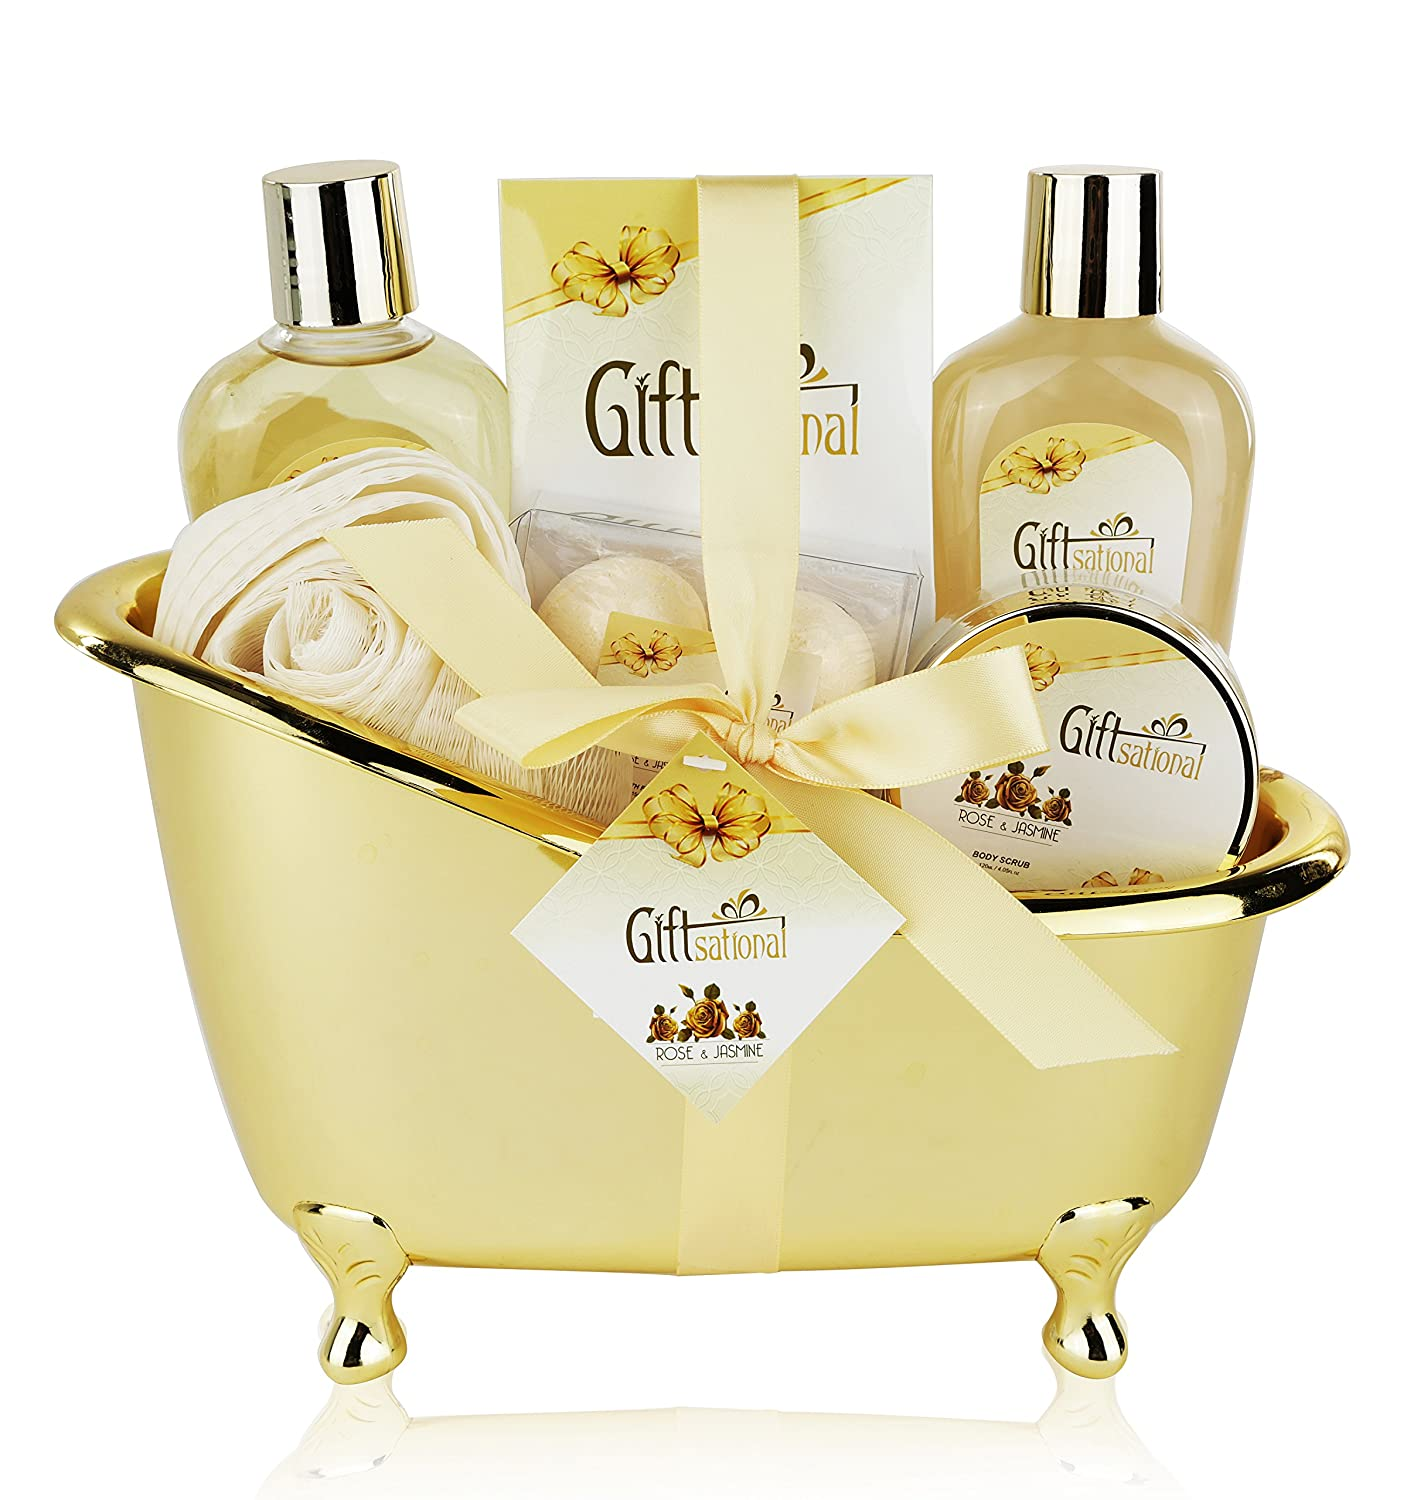 L Shaped Shower Bath Spa Gift Basket Rose Jasmine Bath Set Womens Shower Kit